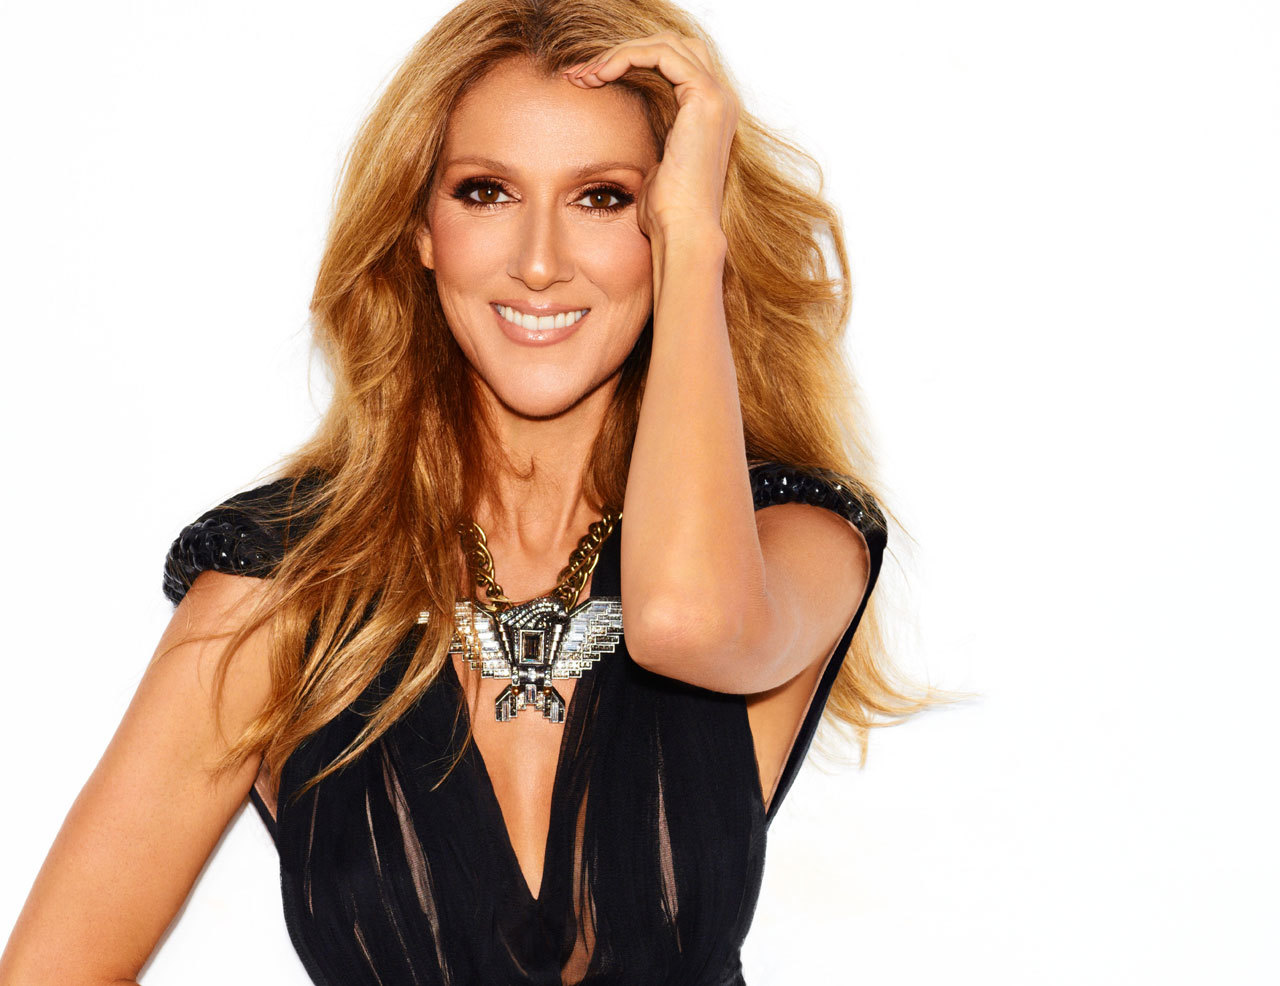 Meet Celine Dion With 2 Vip Tickets To See Her Charitybuzz